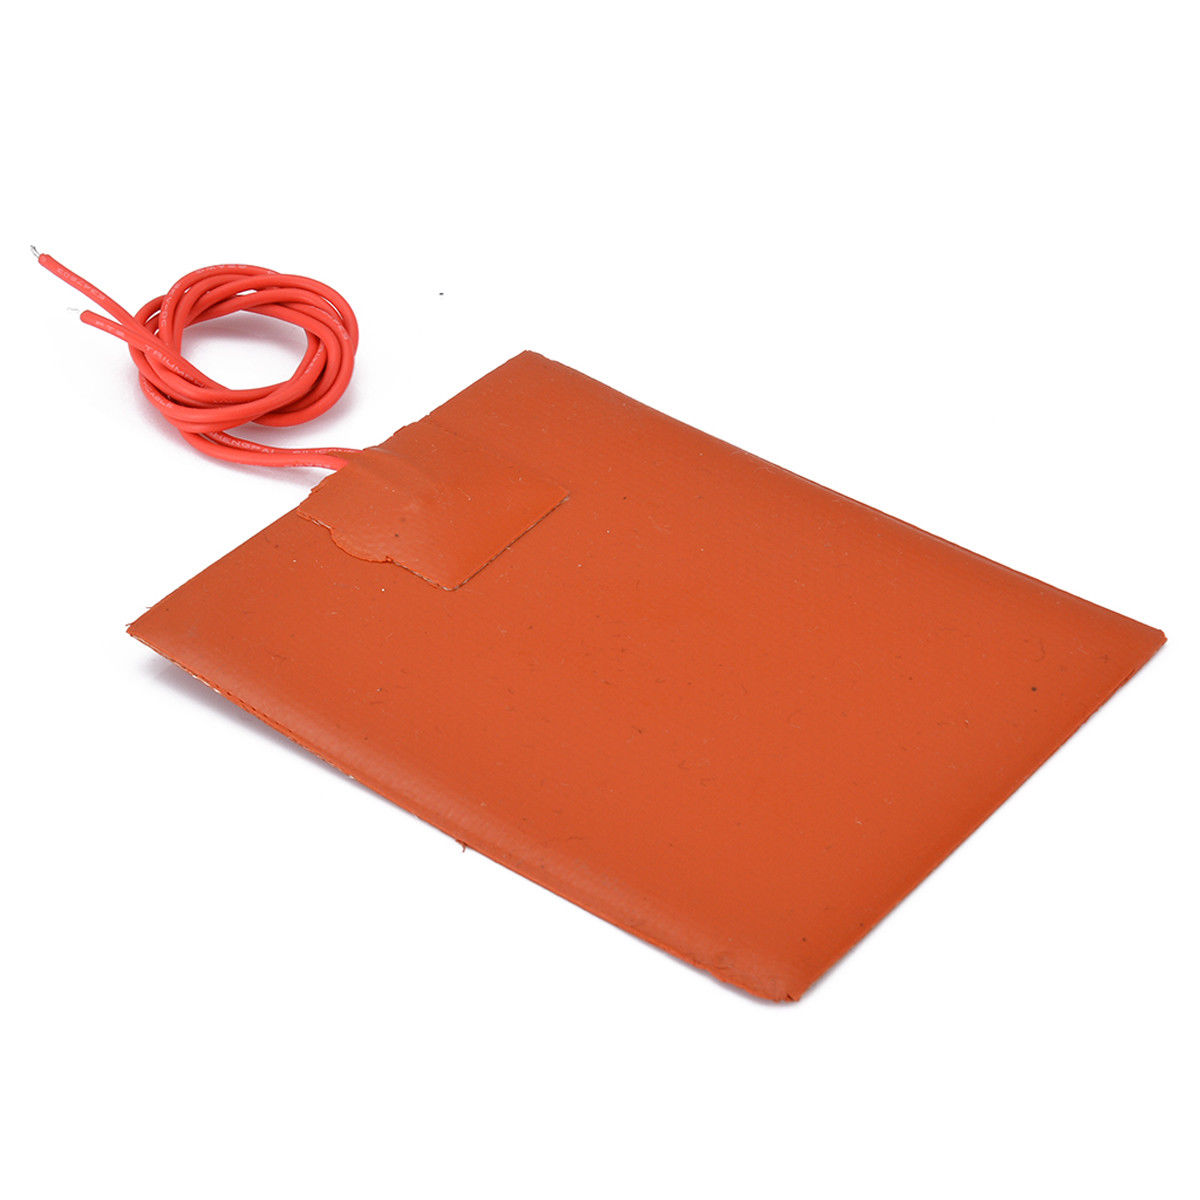 12V 50W 100mm x 100mm Heated Heater Pad Silicone Mat For 3D Printer Heat Bed !